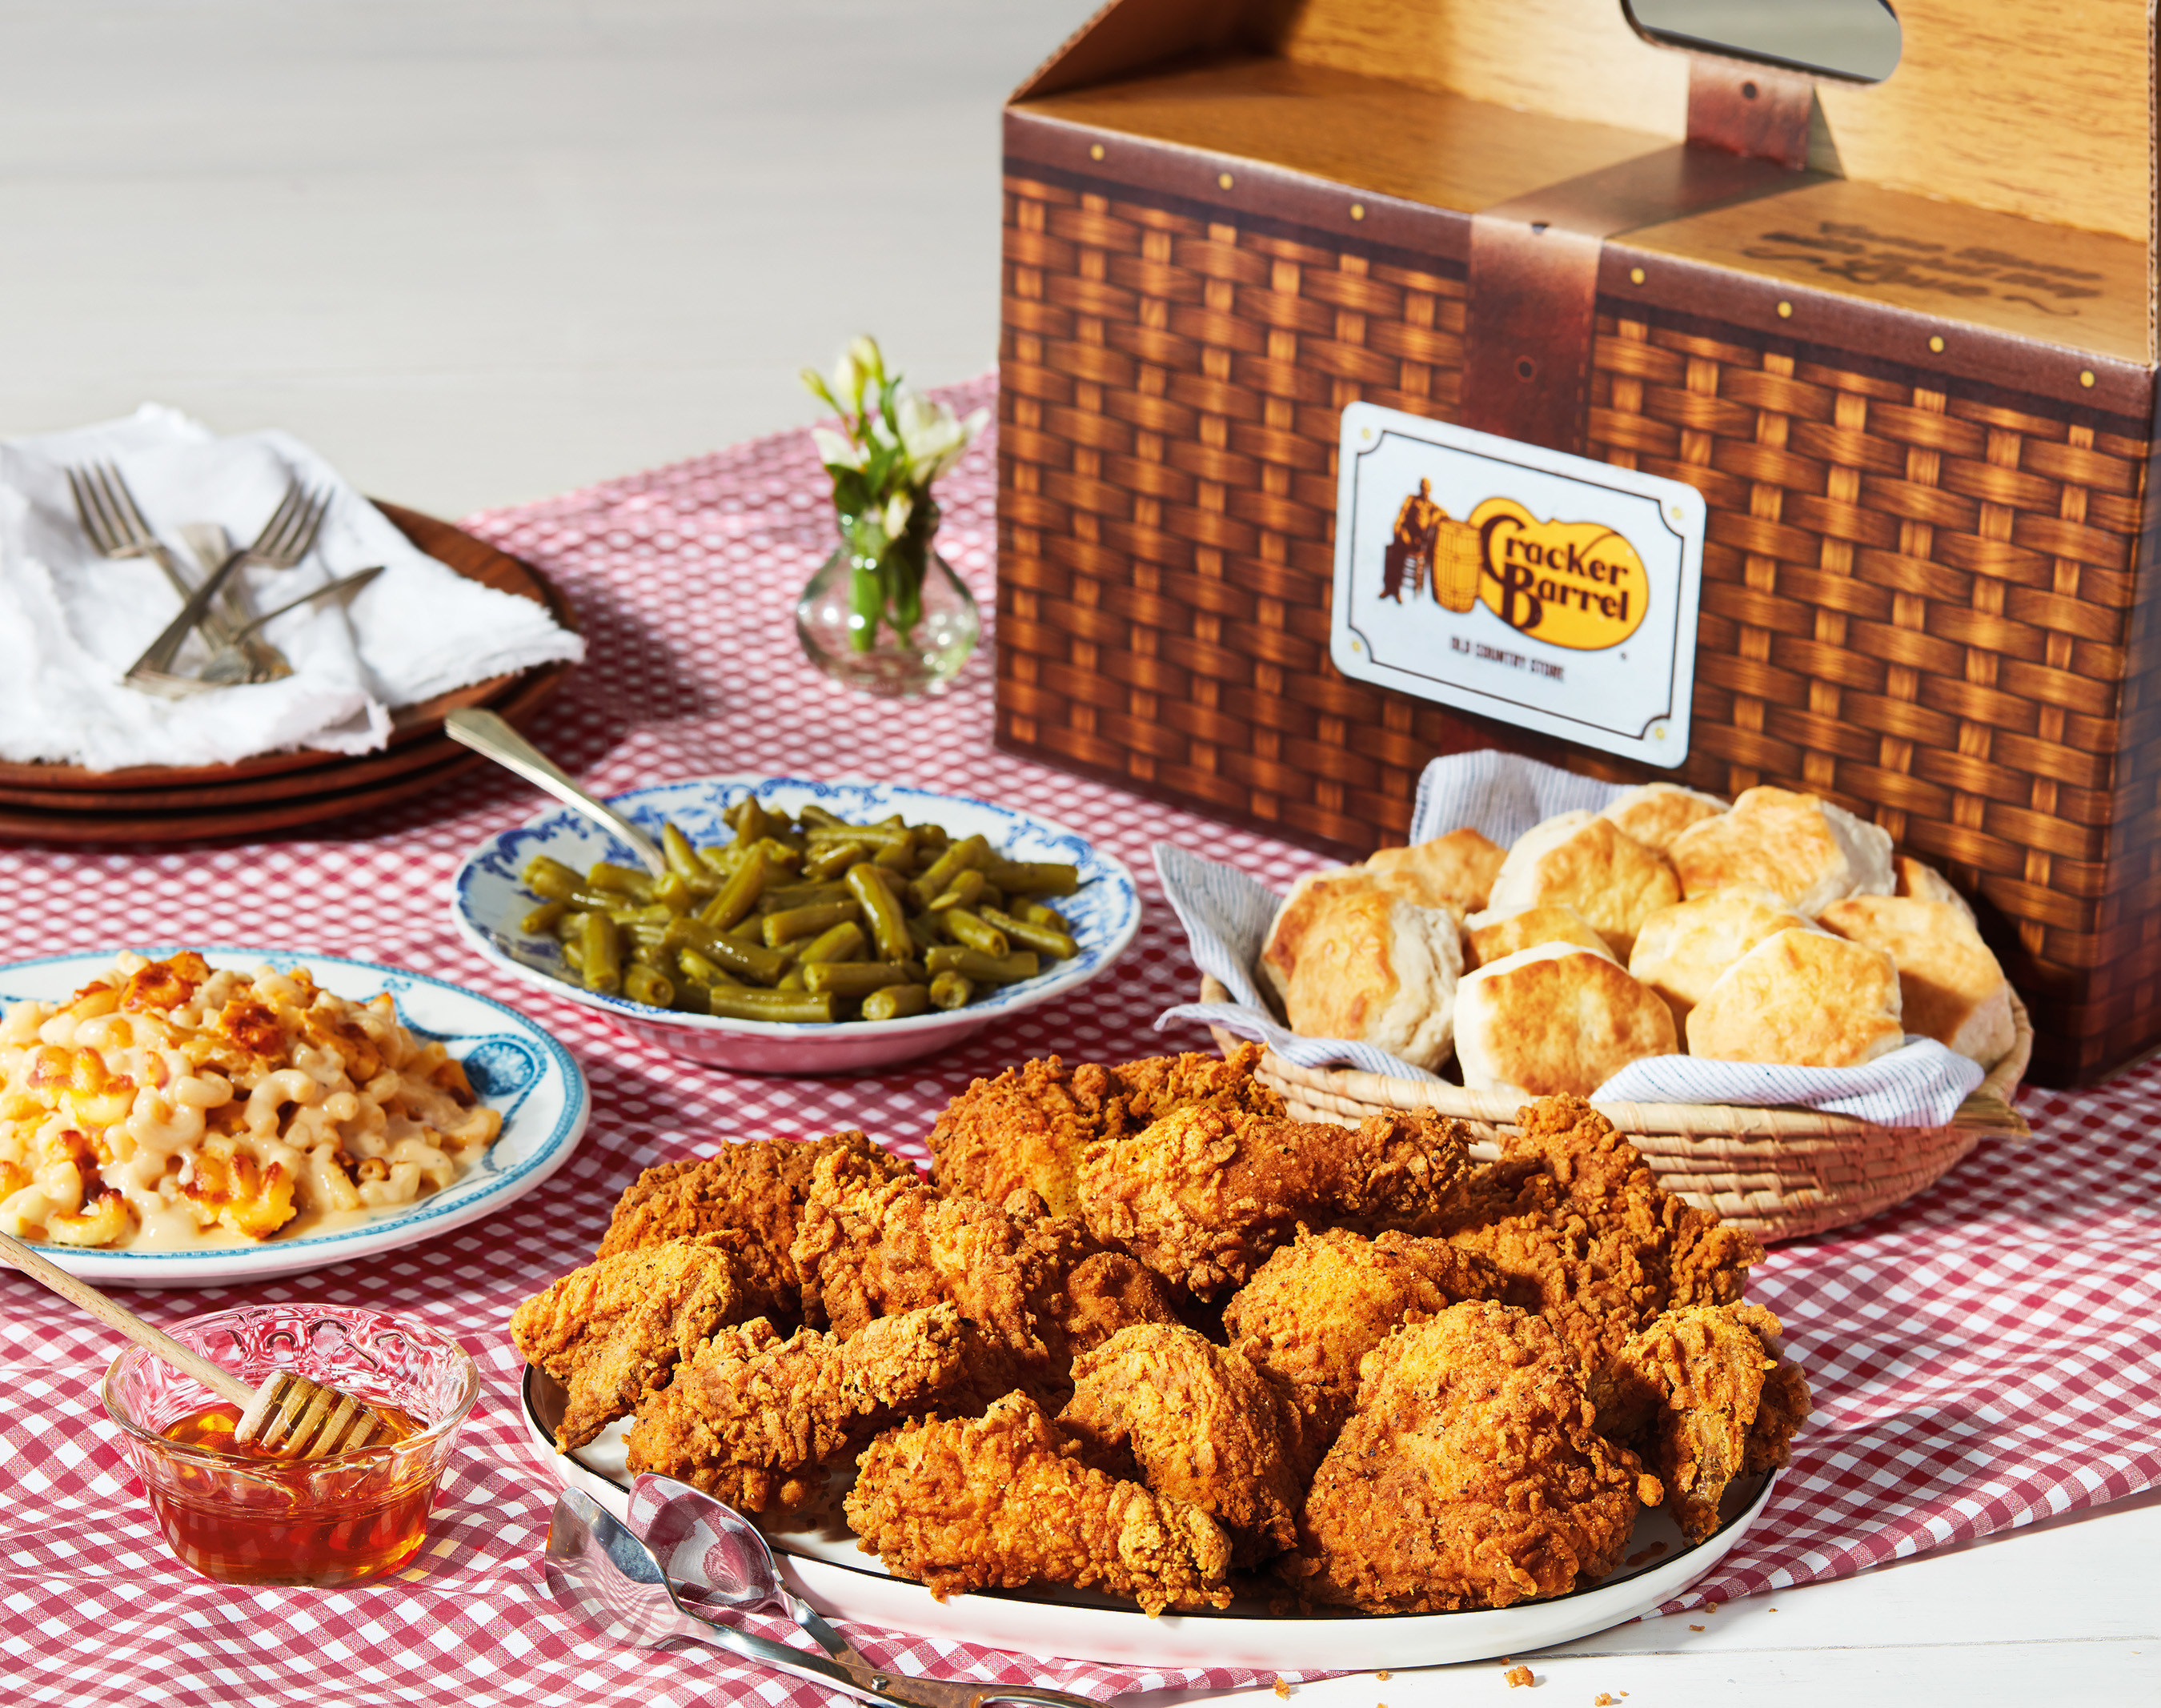 473804aa35 To Celebrate 50 Years, Cracker Barrel Old Country Store Releases Southern  Fried Chicken